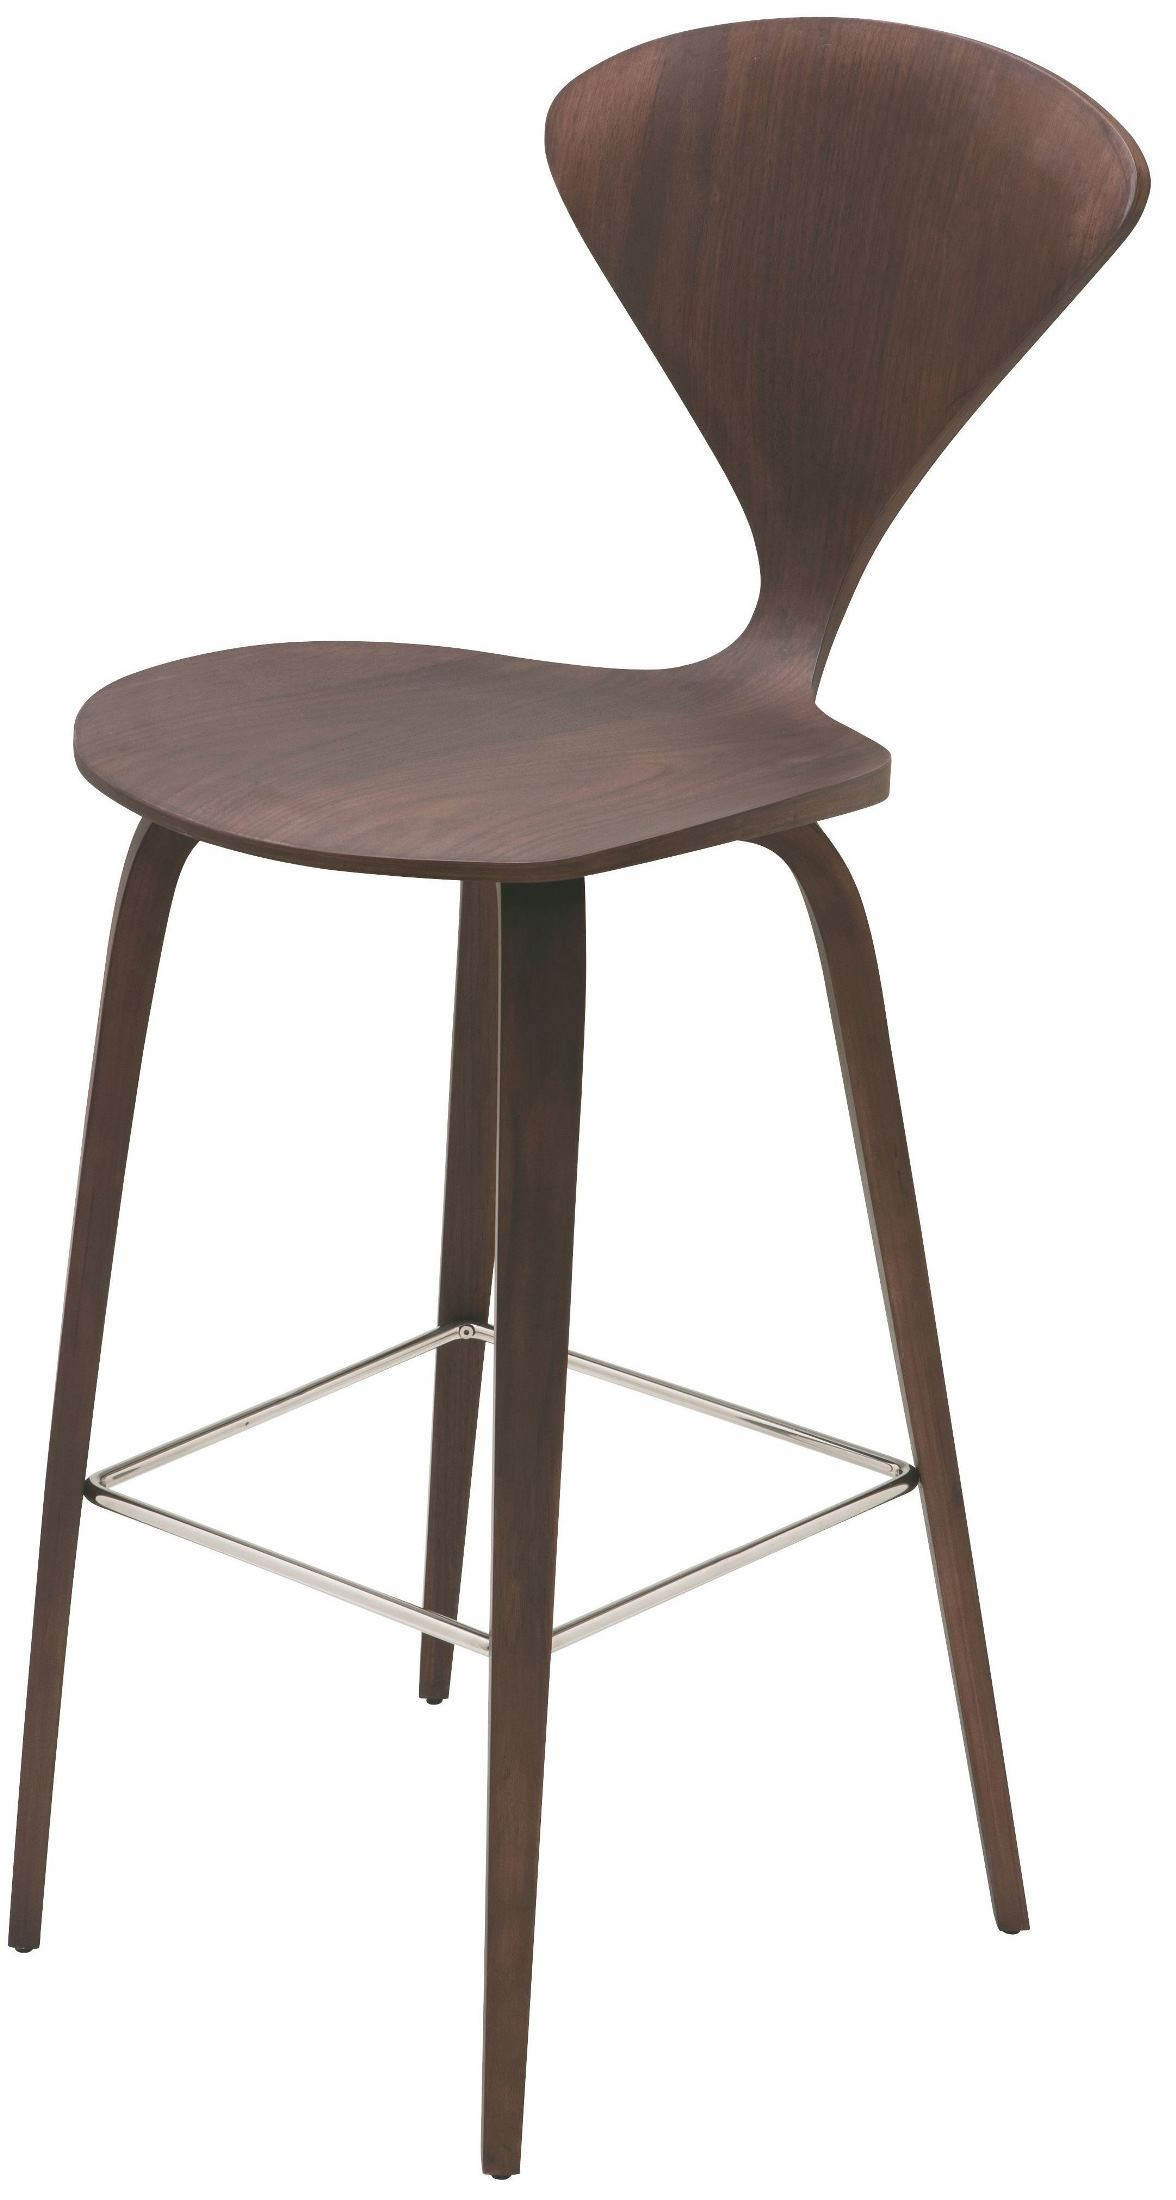 Satine dark walnut wood counter stool hgem nuevo